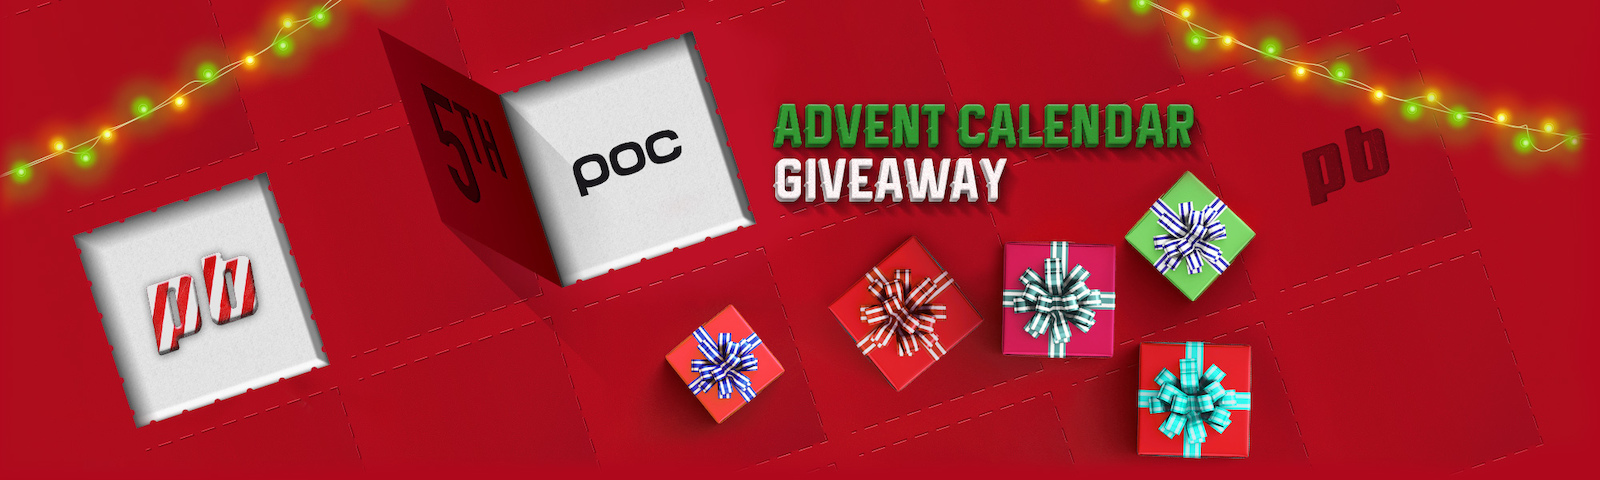 Advent Banner Dec 5 - POC